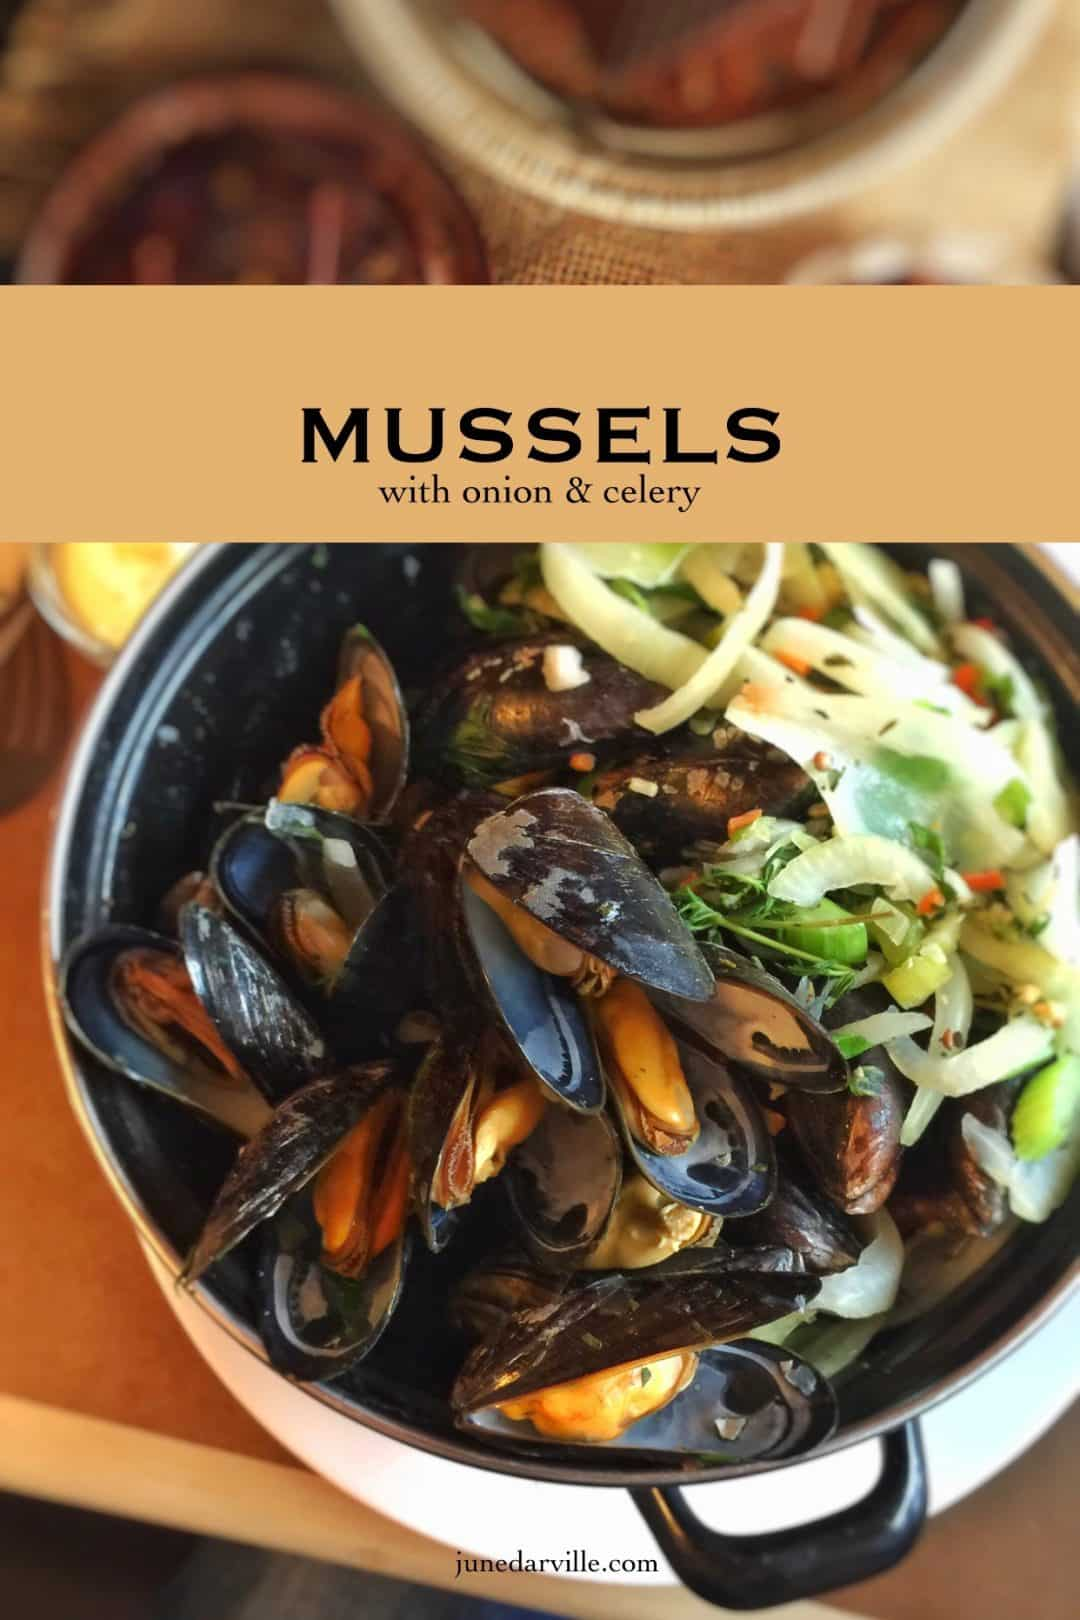 Wanna know what my favorite mussel recipe ever? Simple mussels with celery, onion, garlic and white wine... classic and delish!